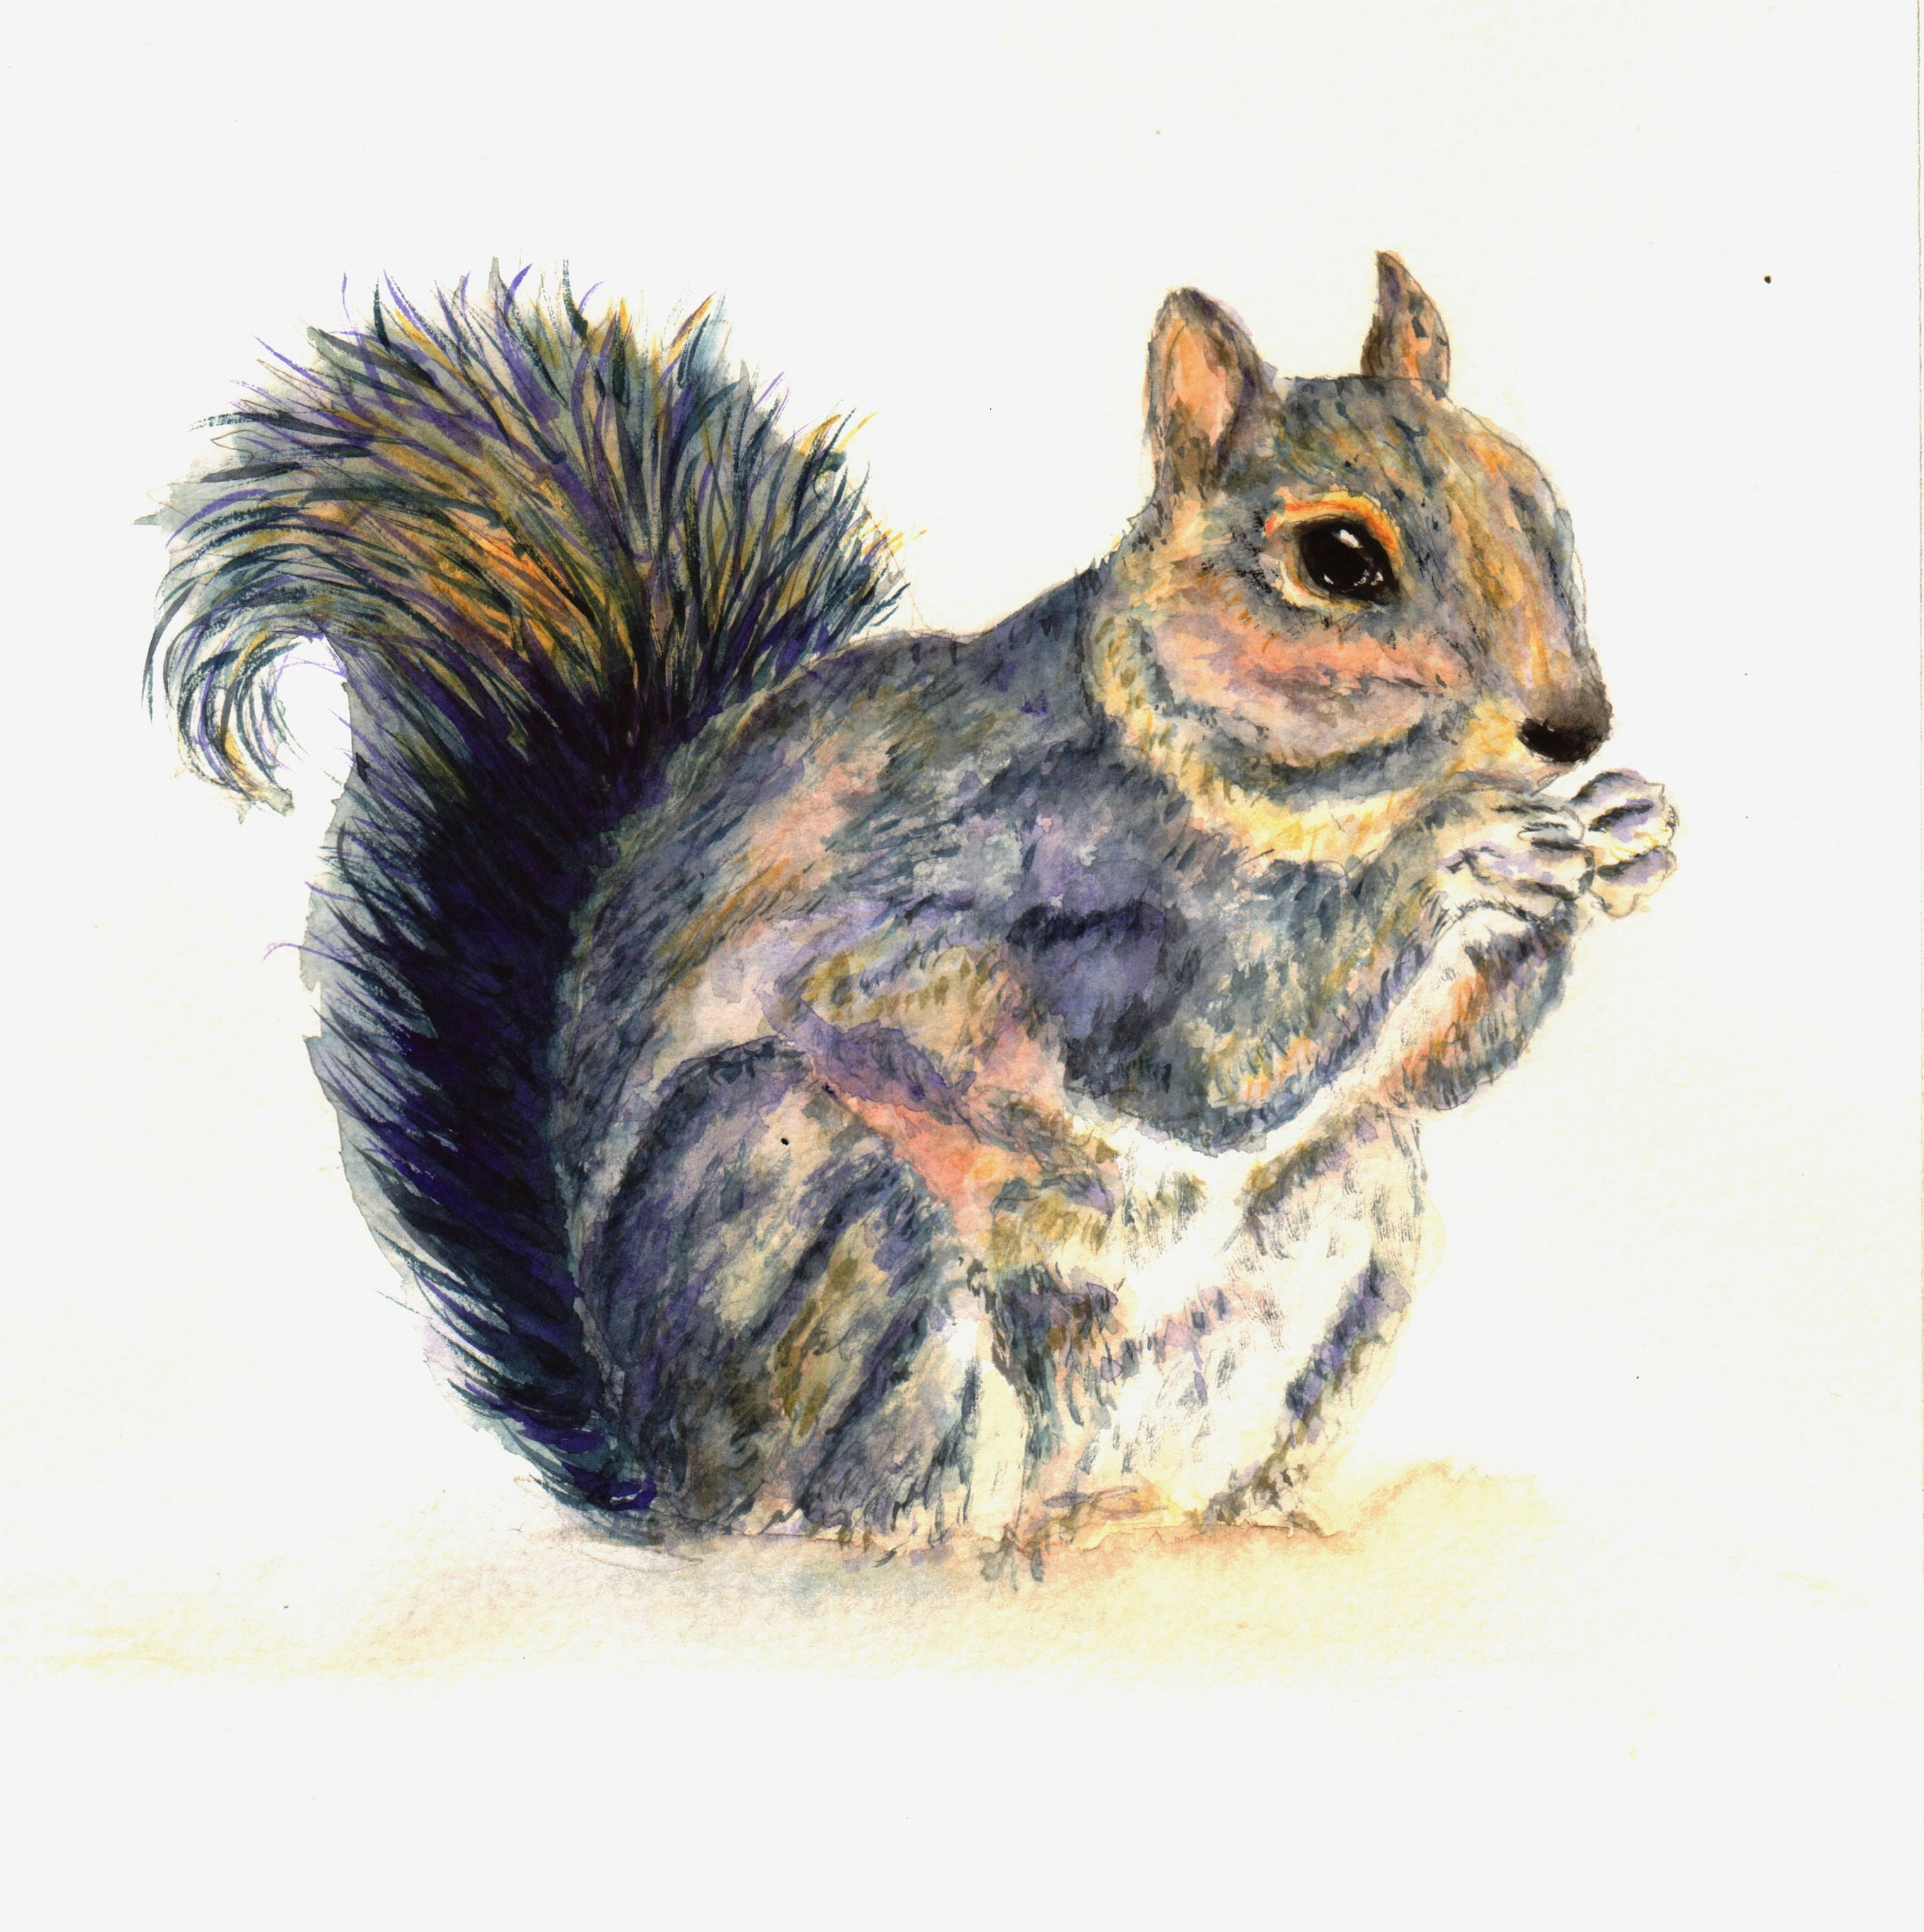 Squirrel Nutkin - An Original Funky Watercolour Painting of a Squirrel. Ideal Unique, Fun, Art Gift for Nature or Animal Lover